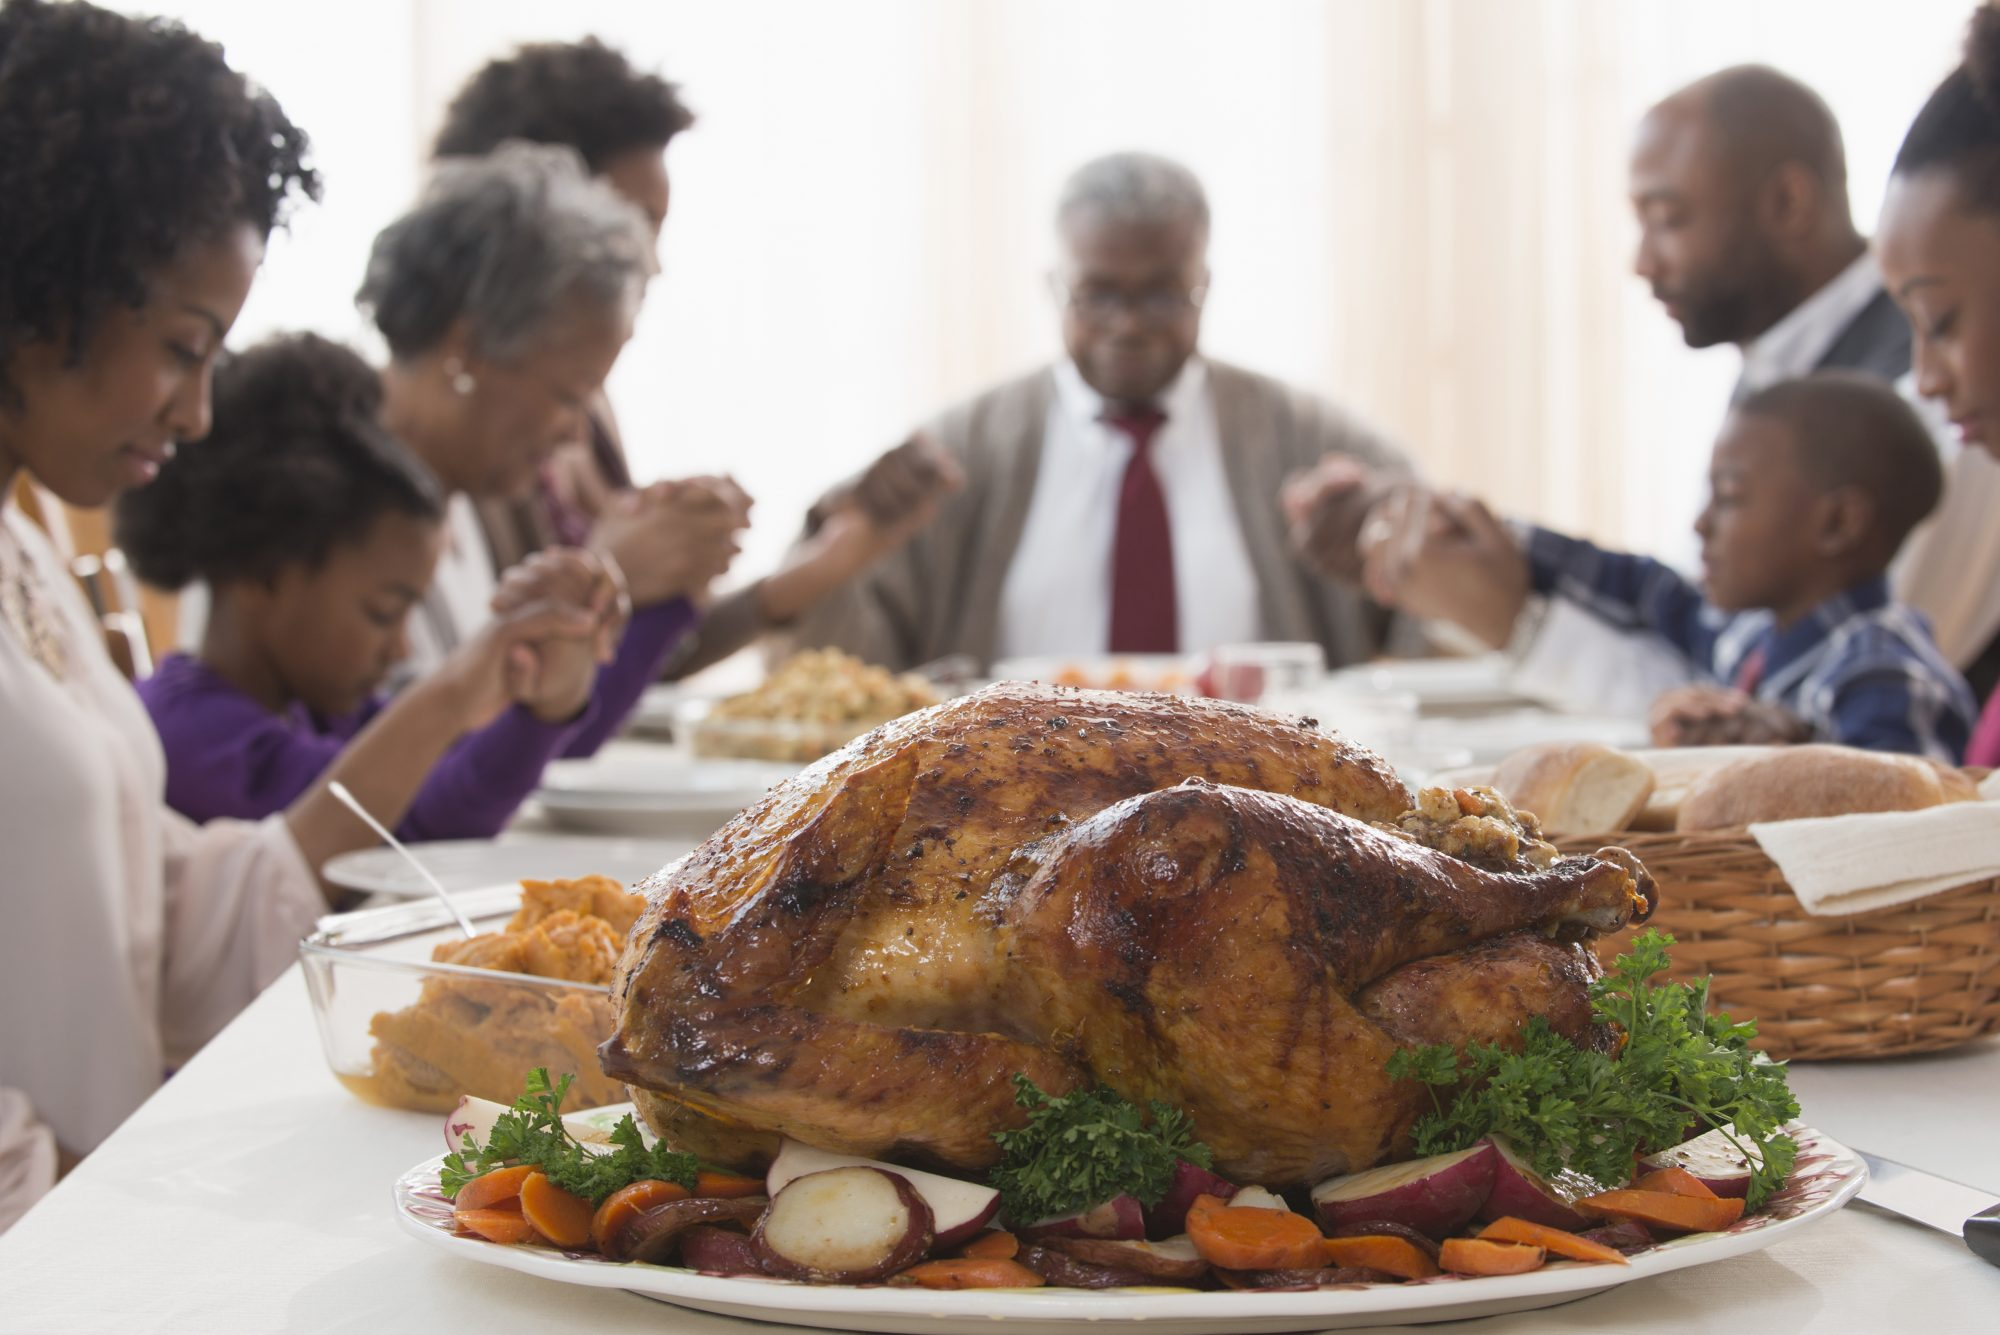 Myth: Eating turkey makes you sleepy